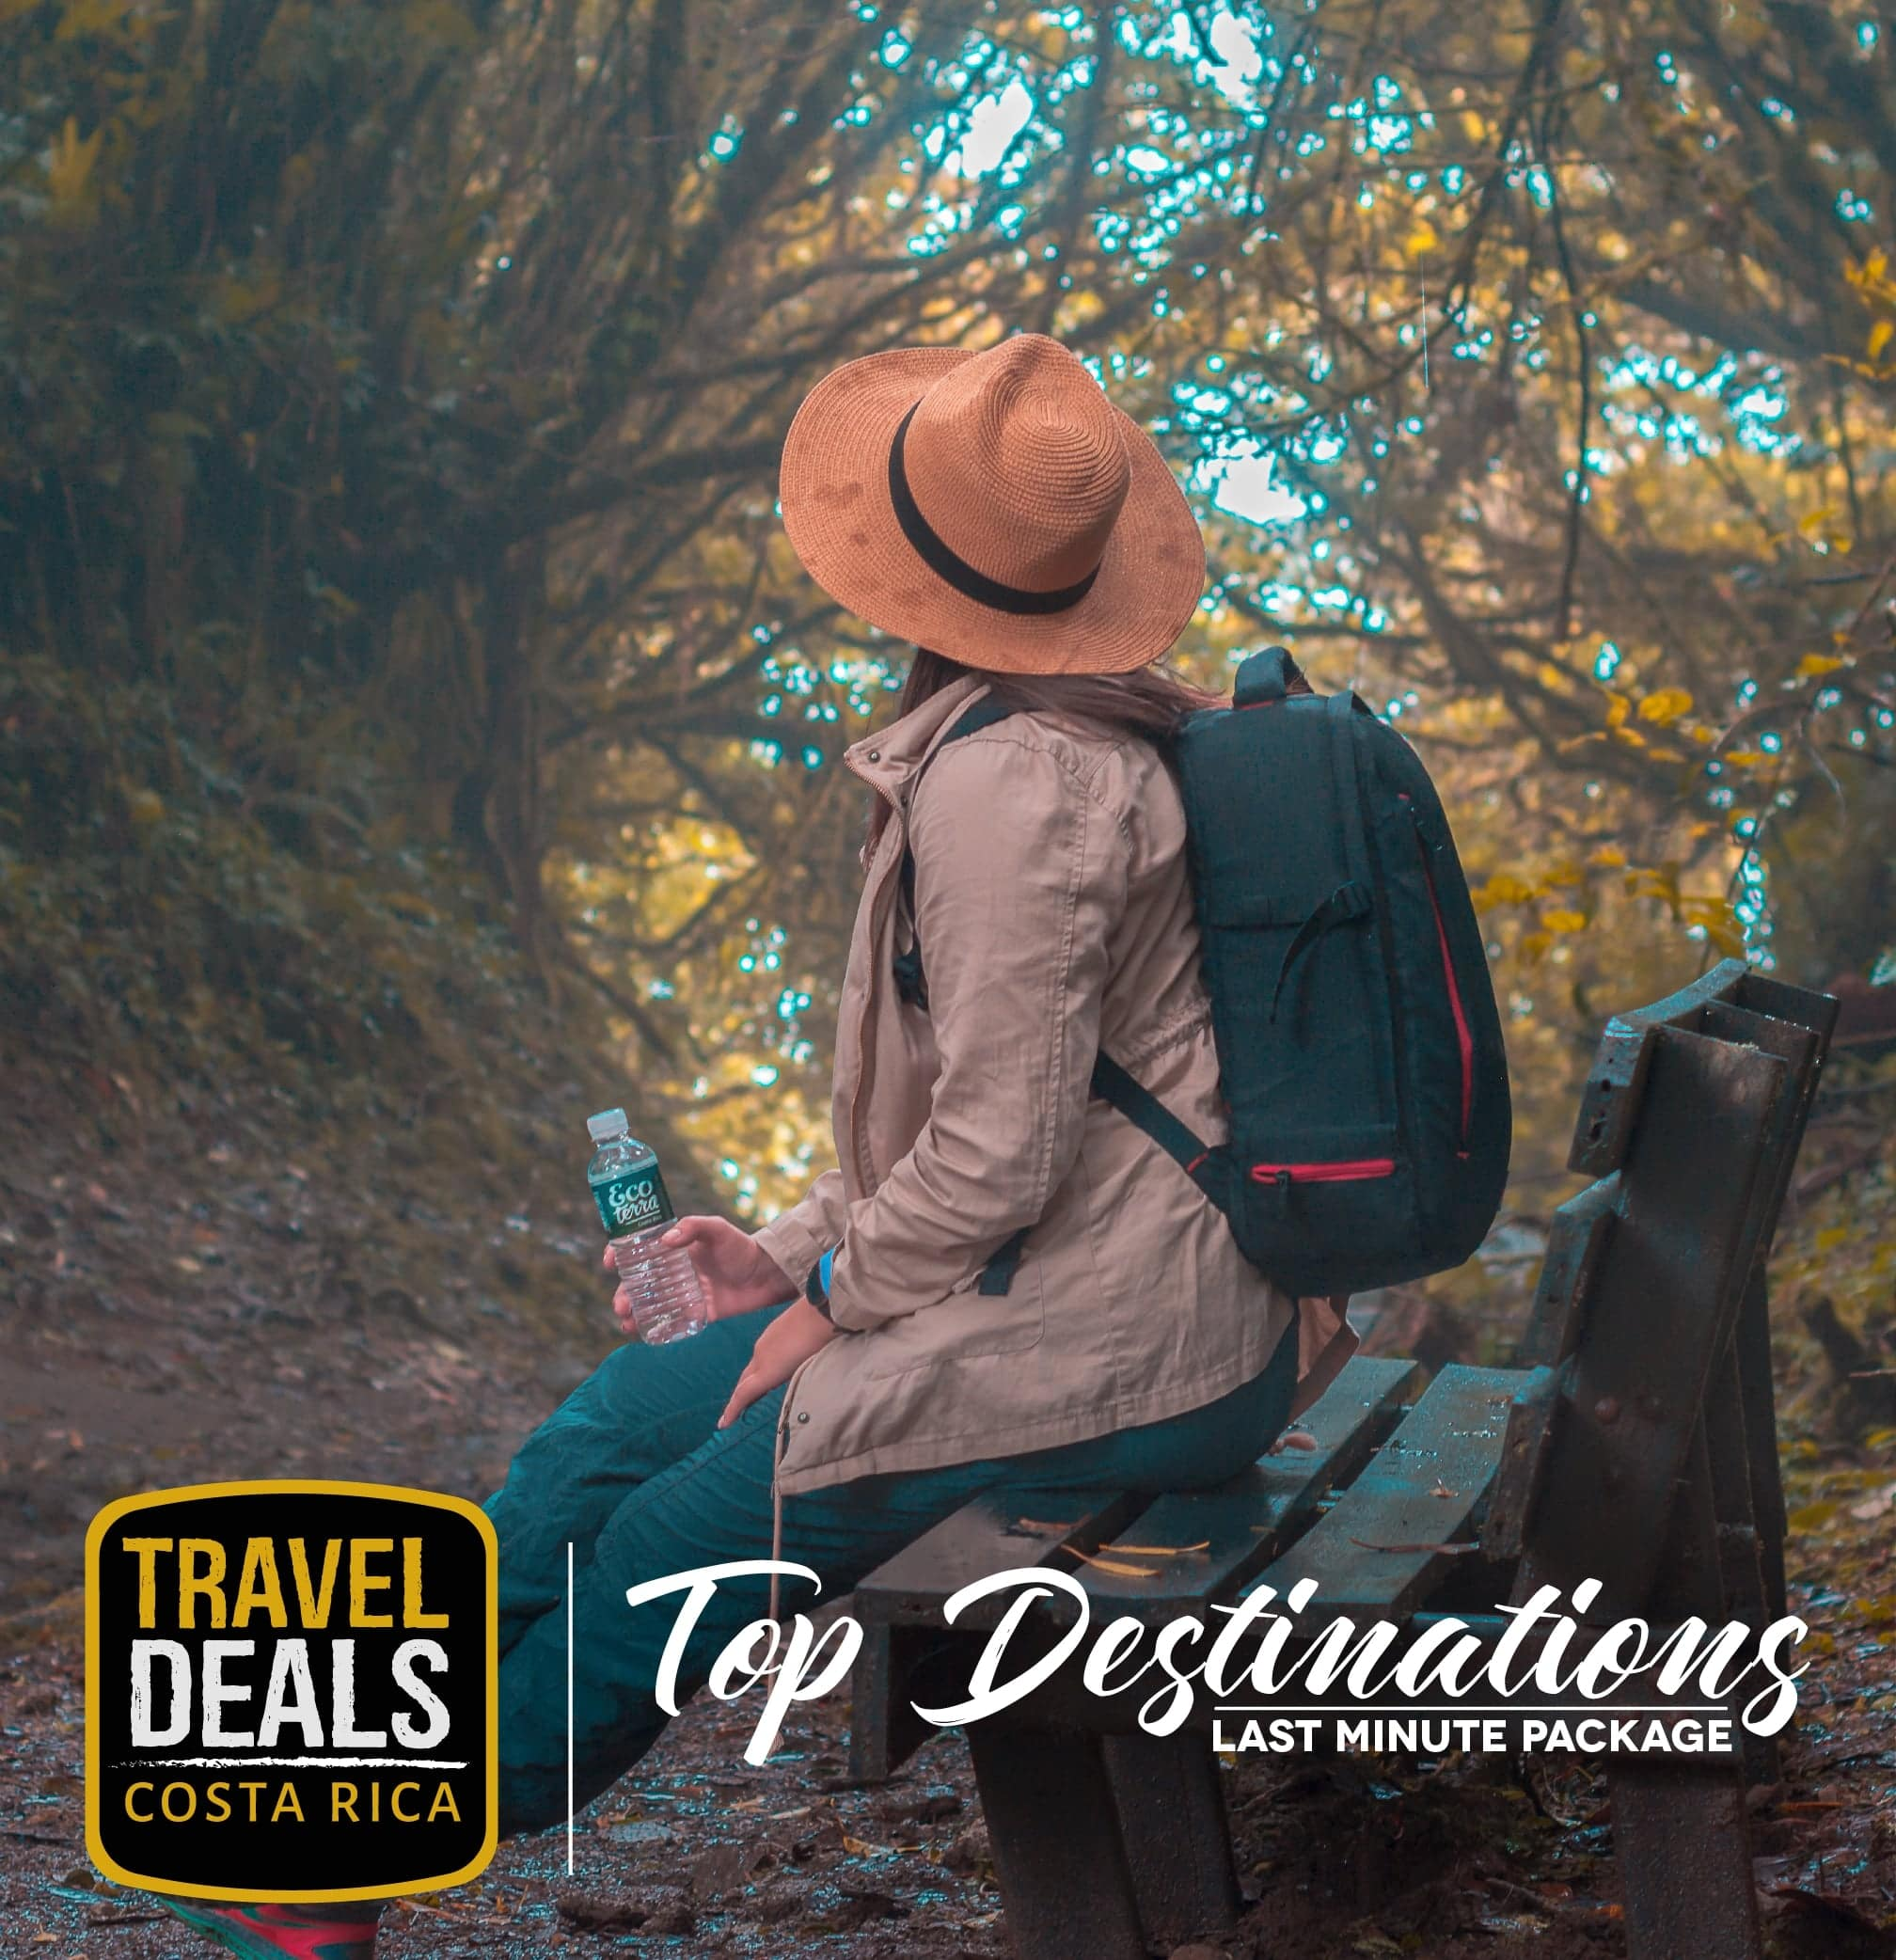 Top destinations last minute deals